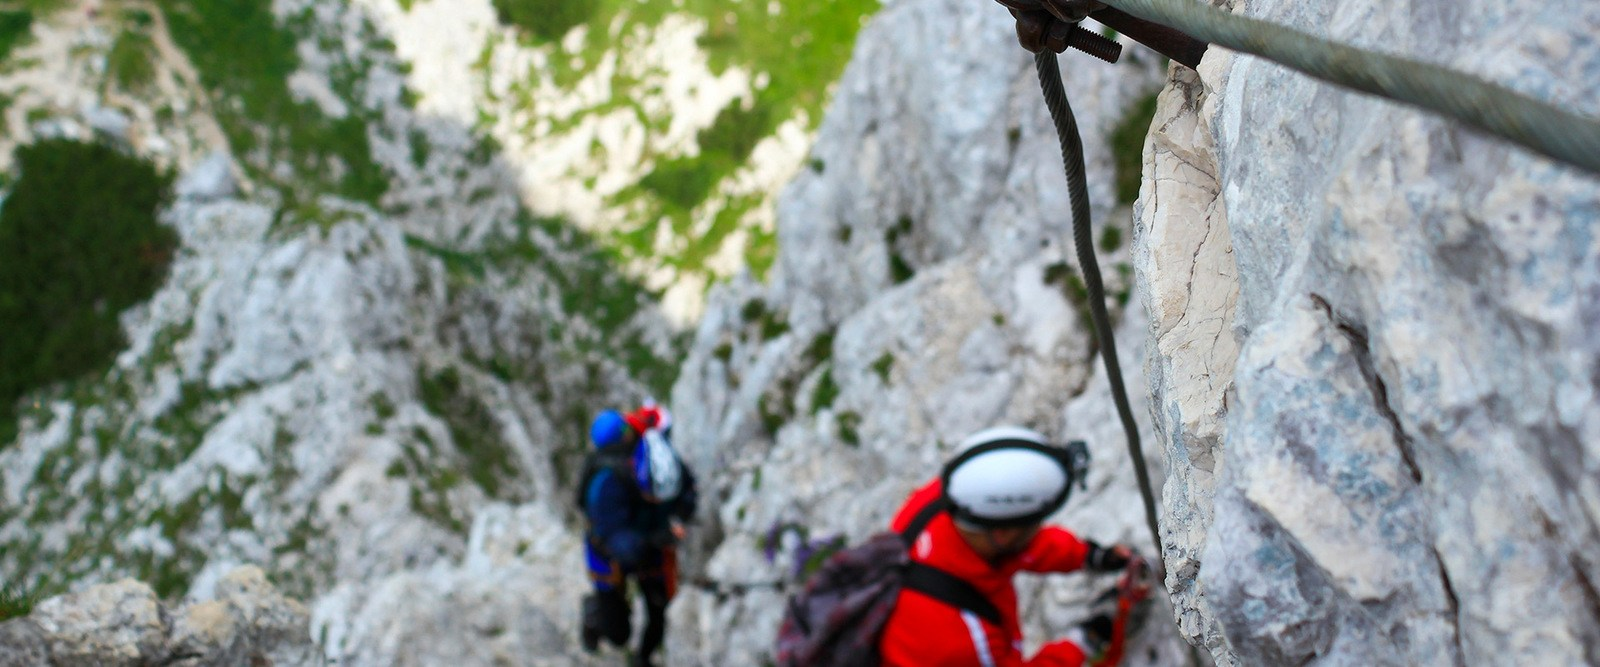 trentino-summer-viaferrata